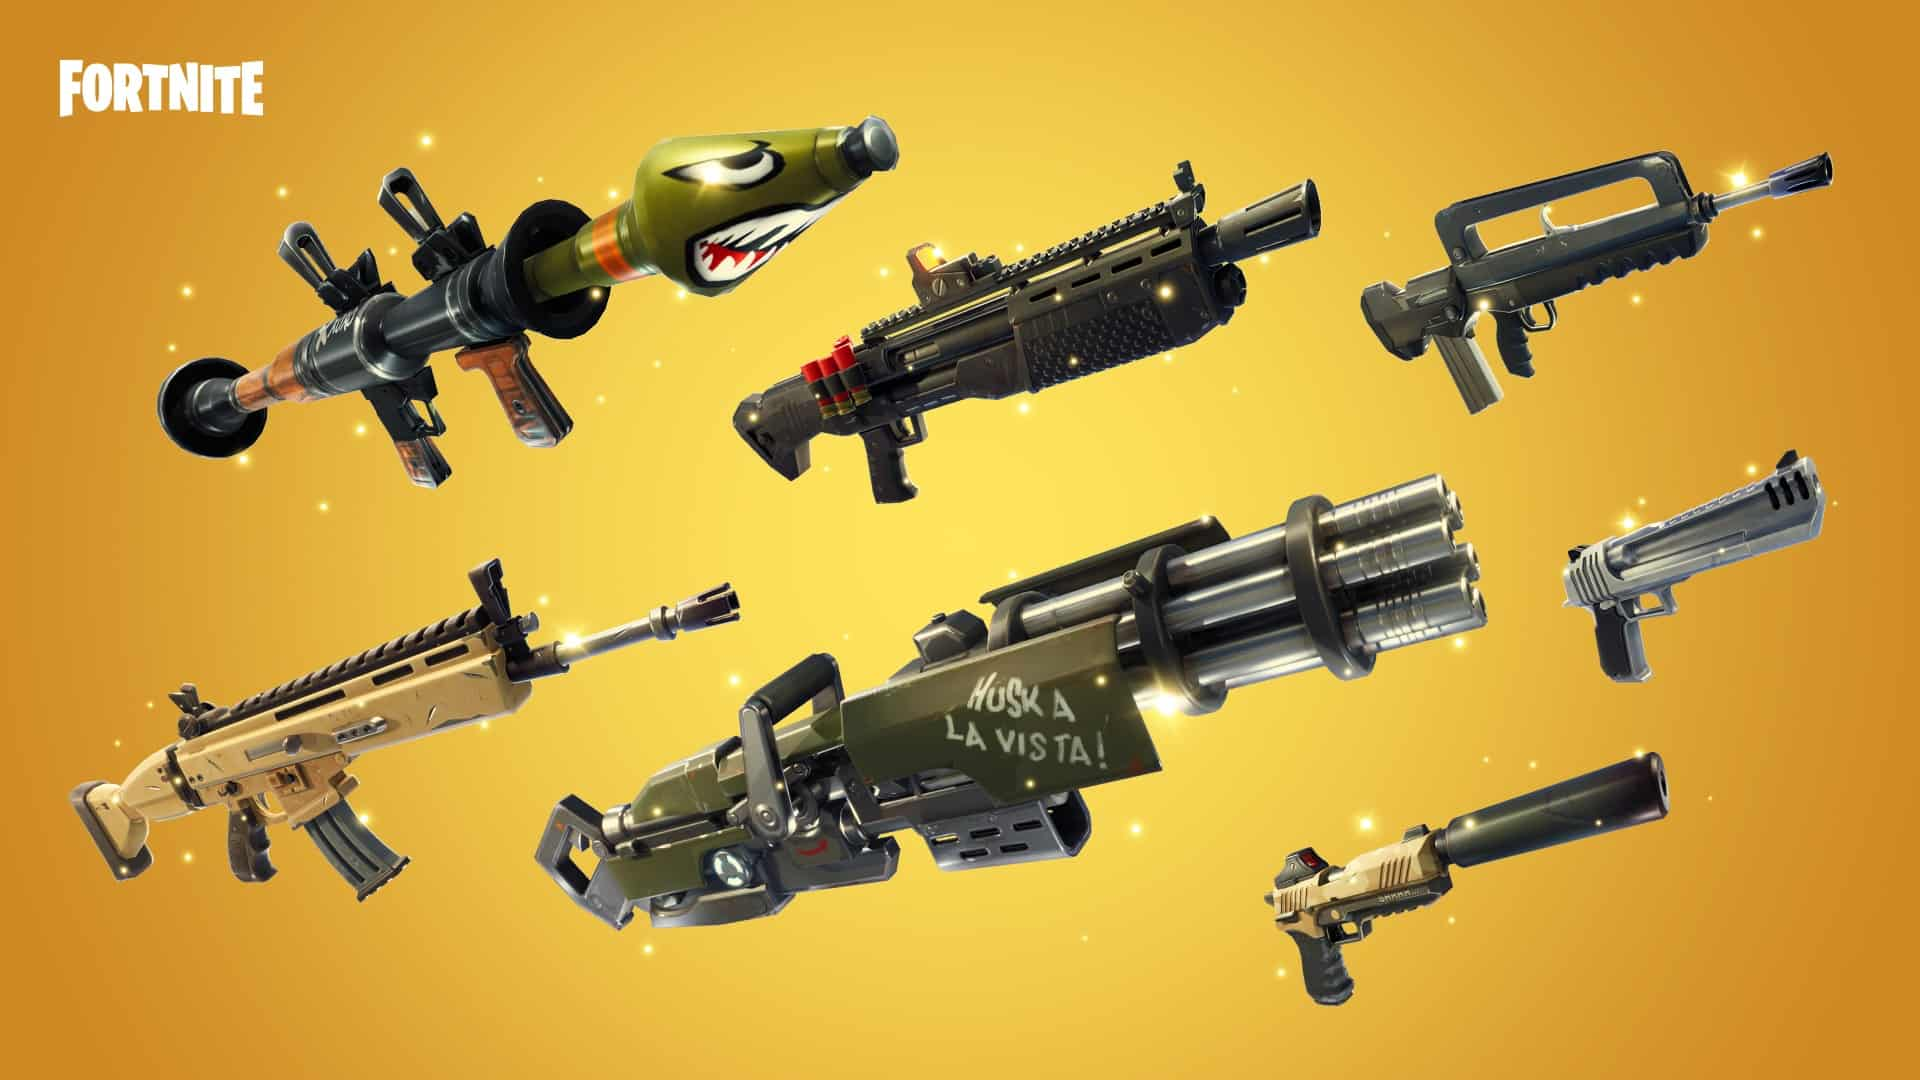 Newest Fortnite Content Update Sends Shockwaves in Battle Royale